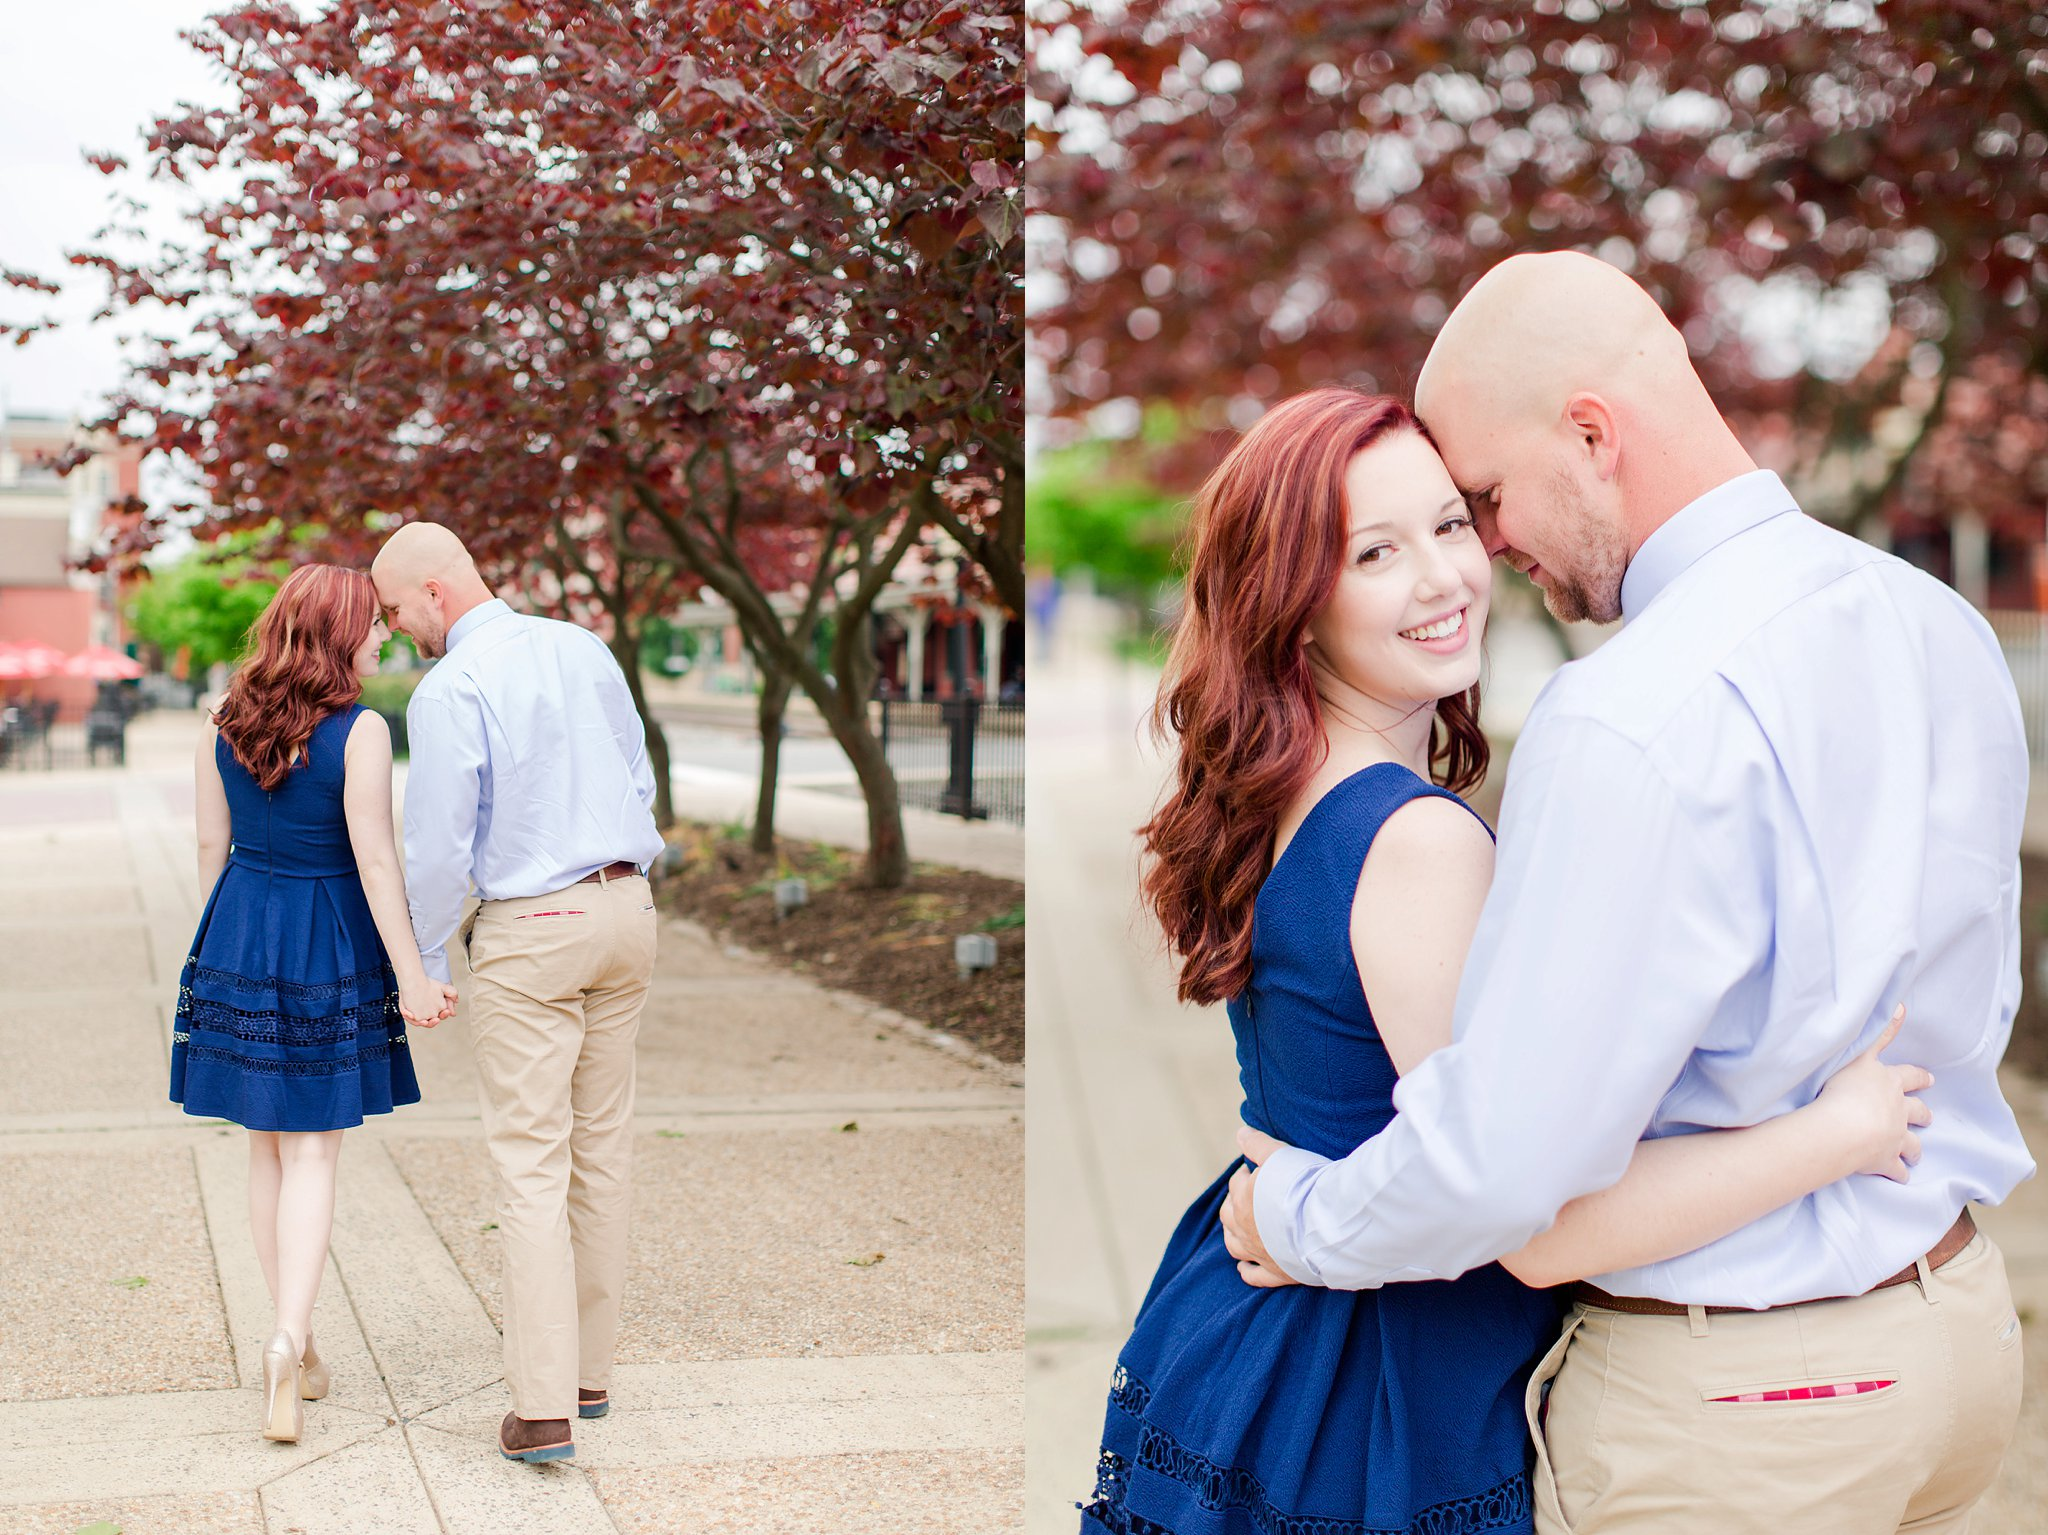 Old Town Manassas Battlefield Engagement Photos Virginia Wedding Photographer Jessica & Jason-26.jpg